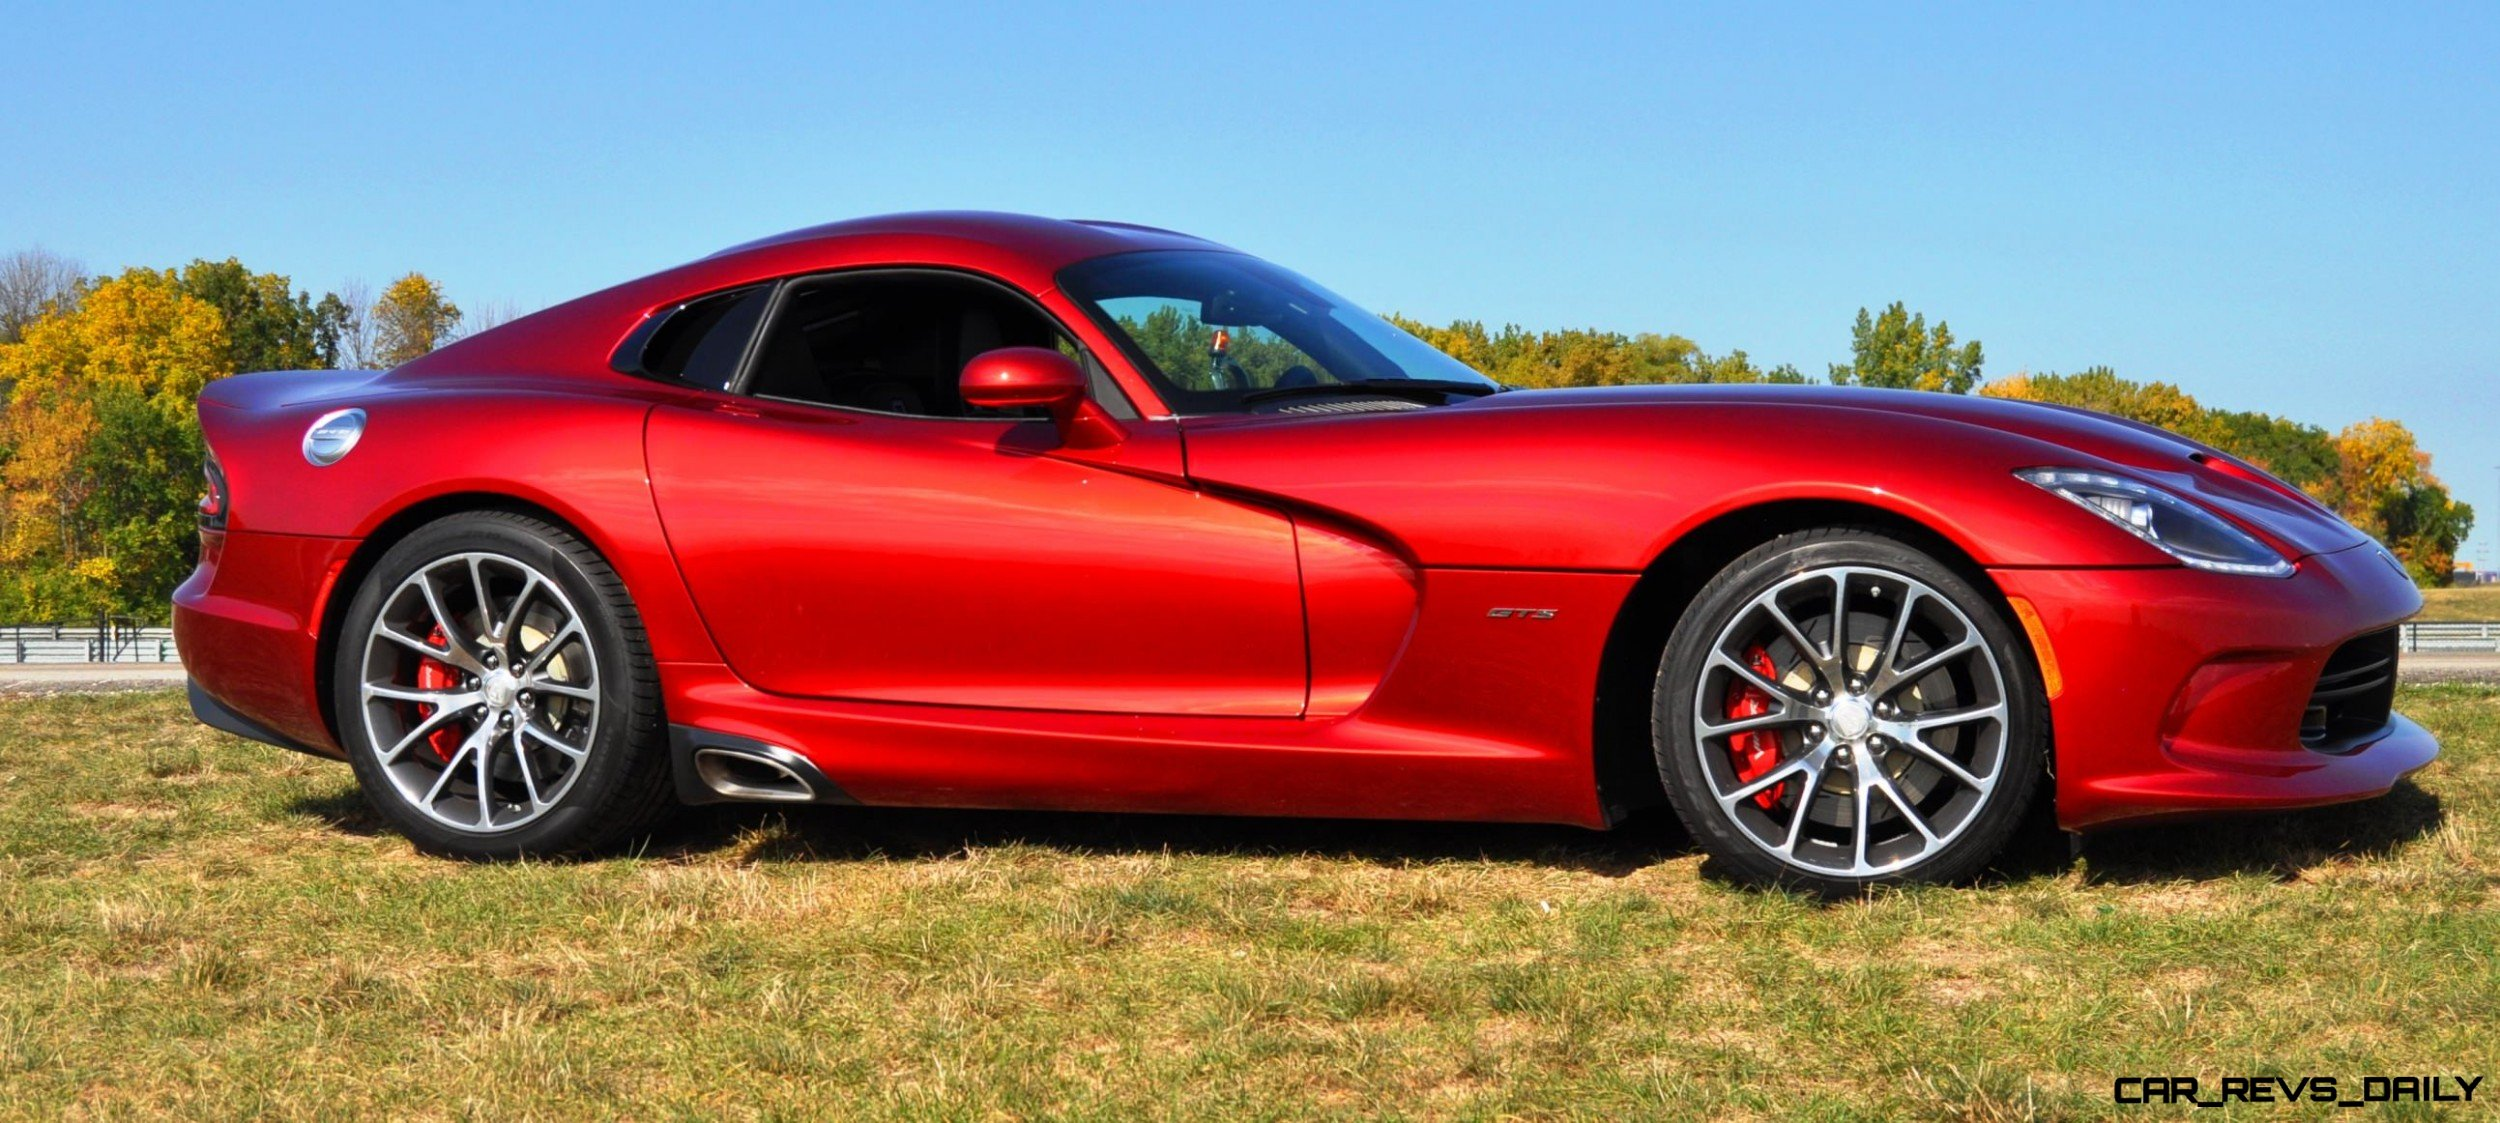 CarRevsDaily.com - 2014 SRT Viper GTS - Huge Wallpapers9